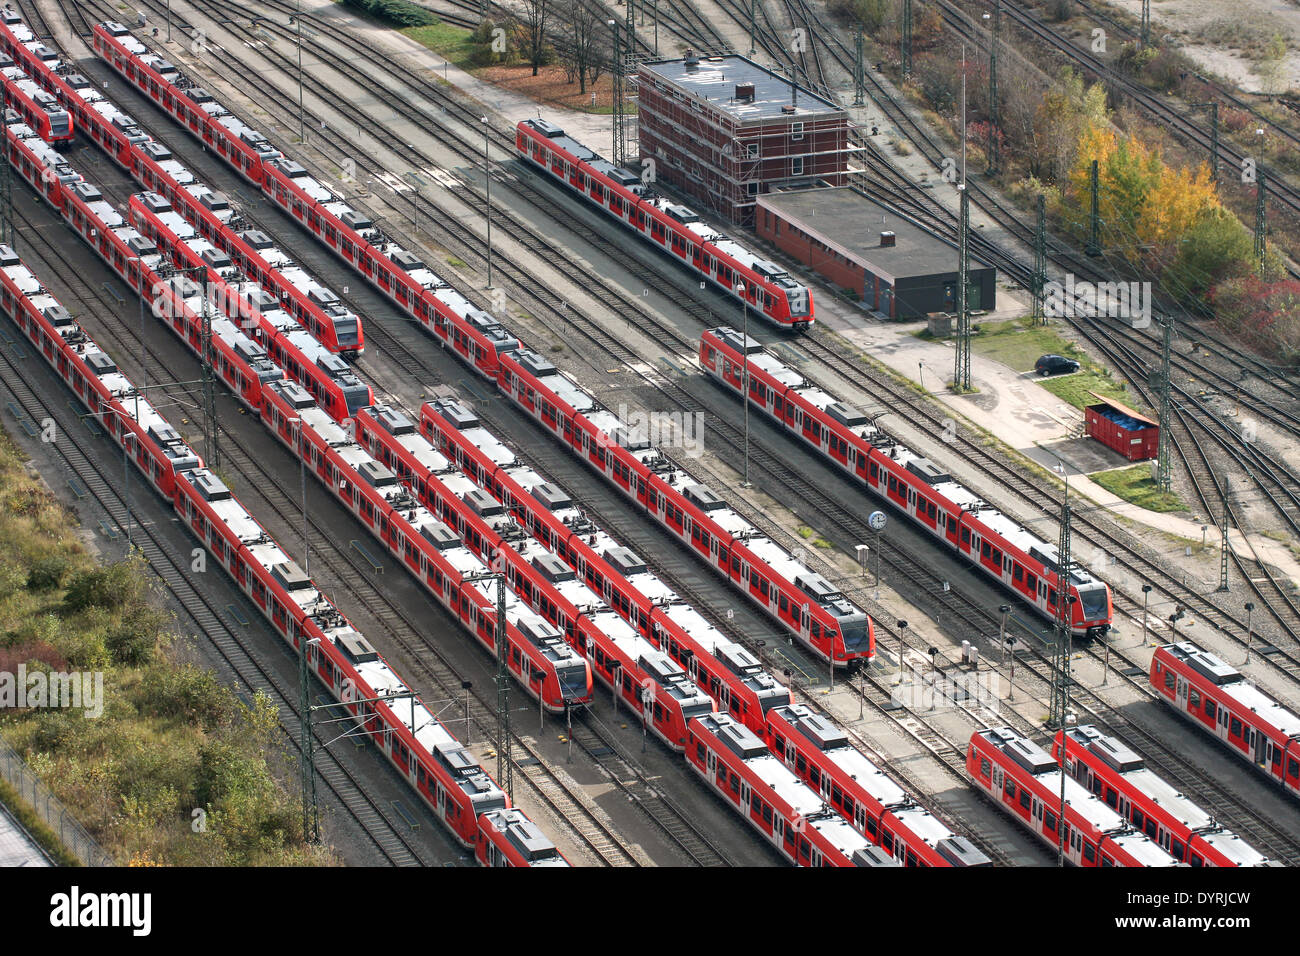 S-Bahn trains in Munich, 2008 Stock Photo